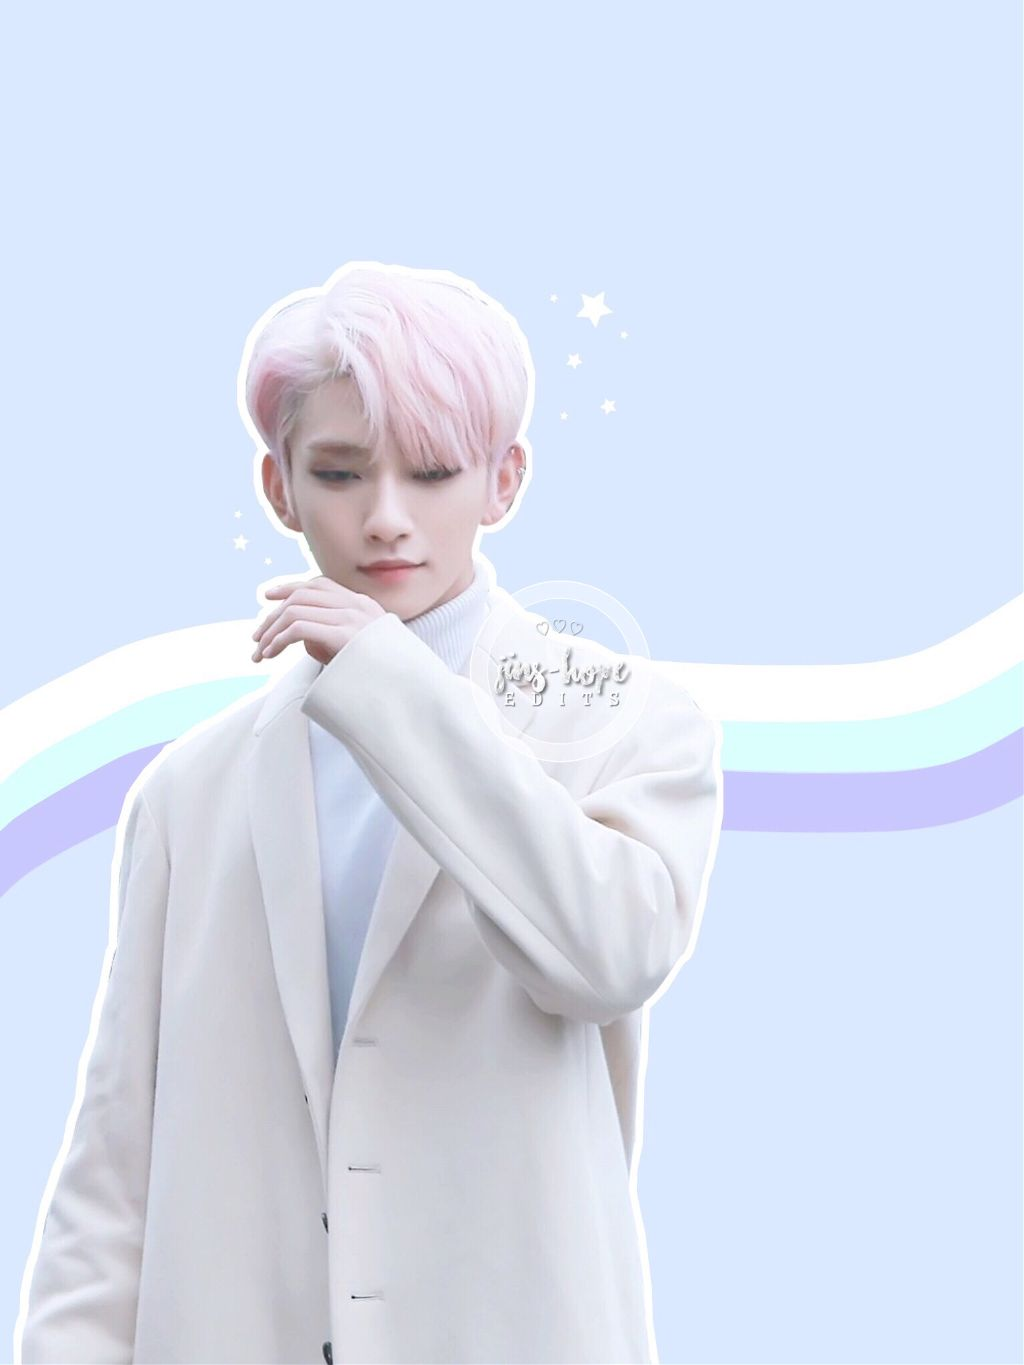 happy birthday shua!! ilysm 💖💖💖 (requests closed)  #seventeen #seventeenkpop #seventeenjoshua #joshuahong #hongjisoo #jisoo #joshua #shua #kpop #pastel #edit #kpopedit   photo cr: eve of eve